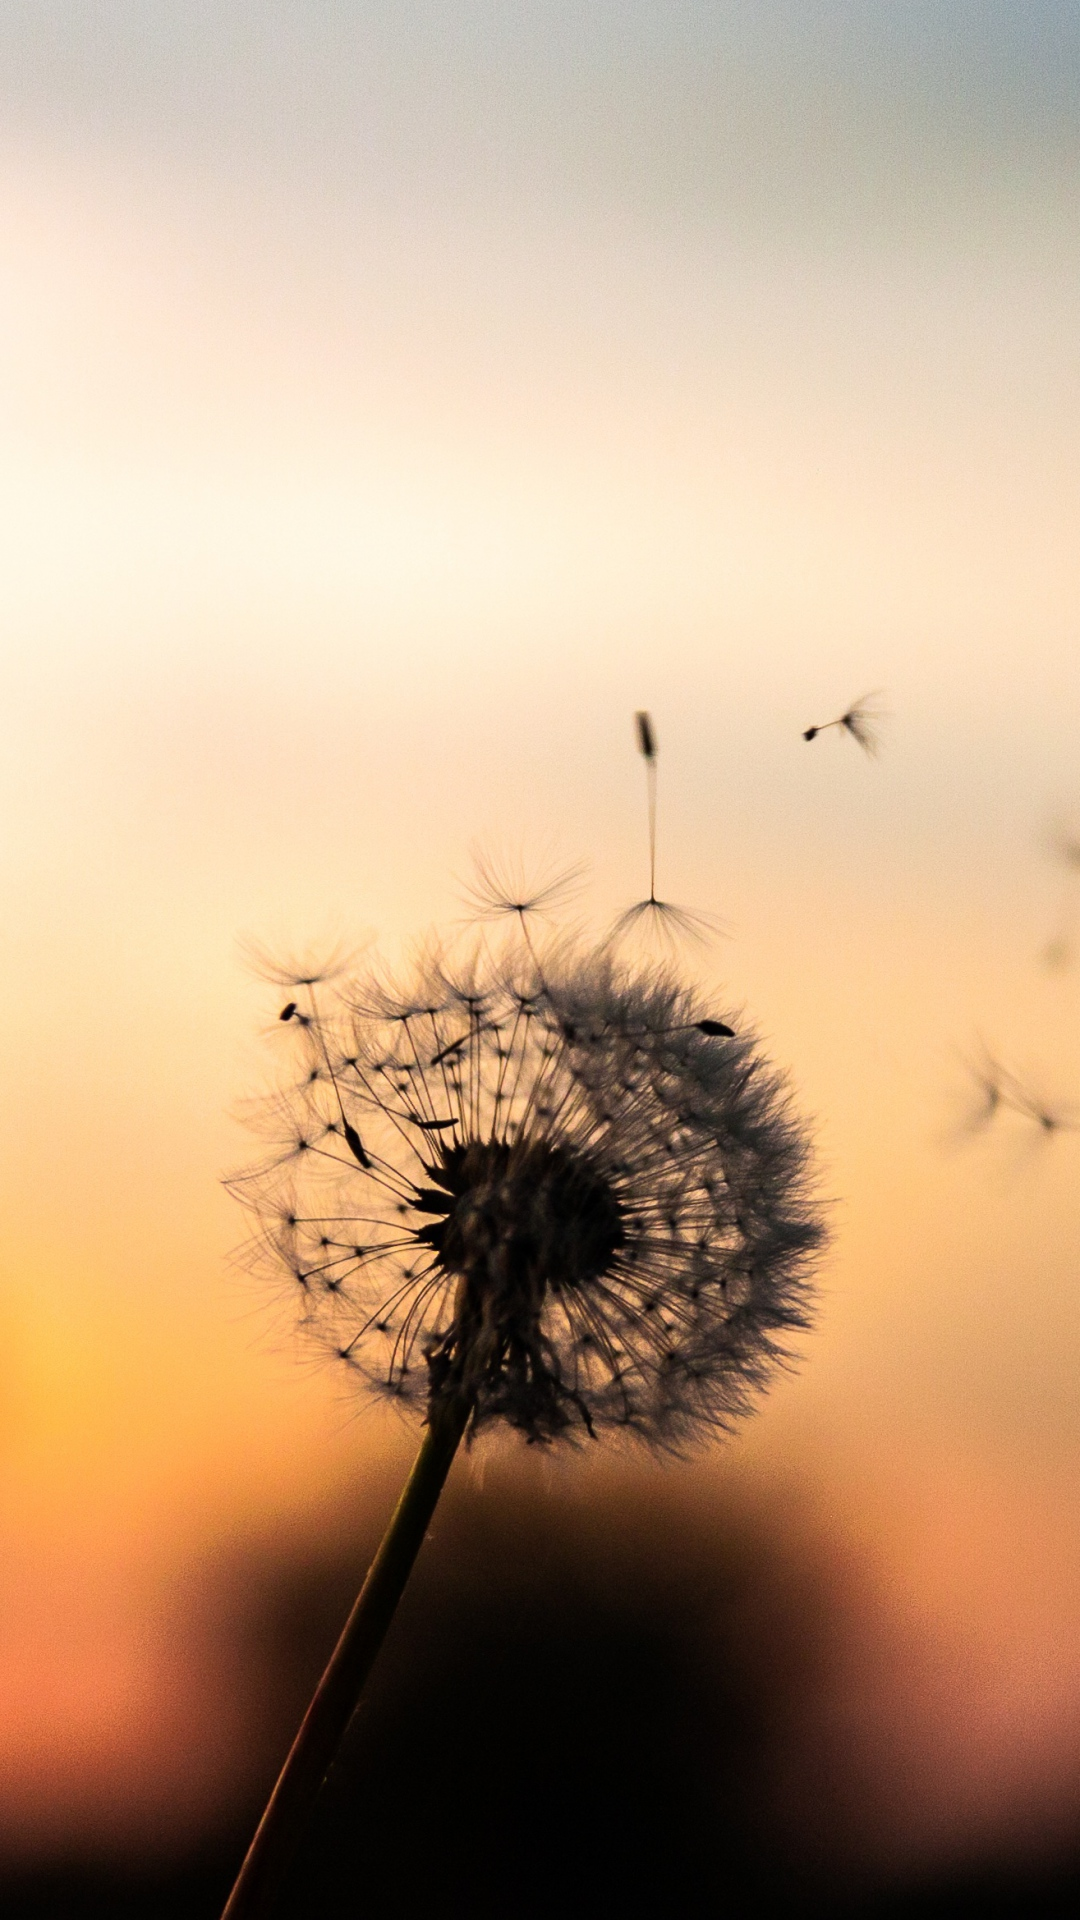 iphone wallpaper dandelion down Dandelion